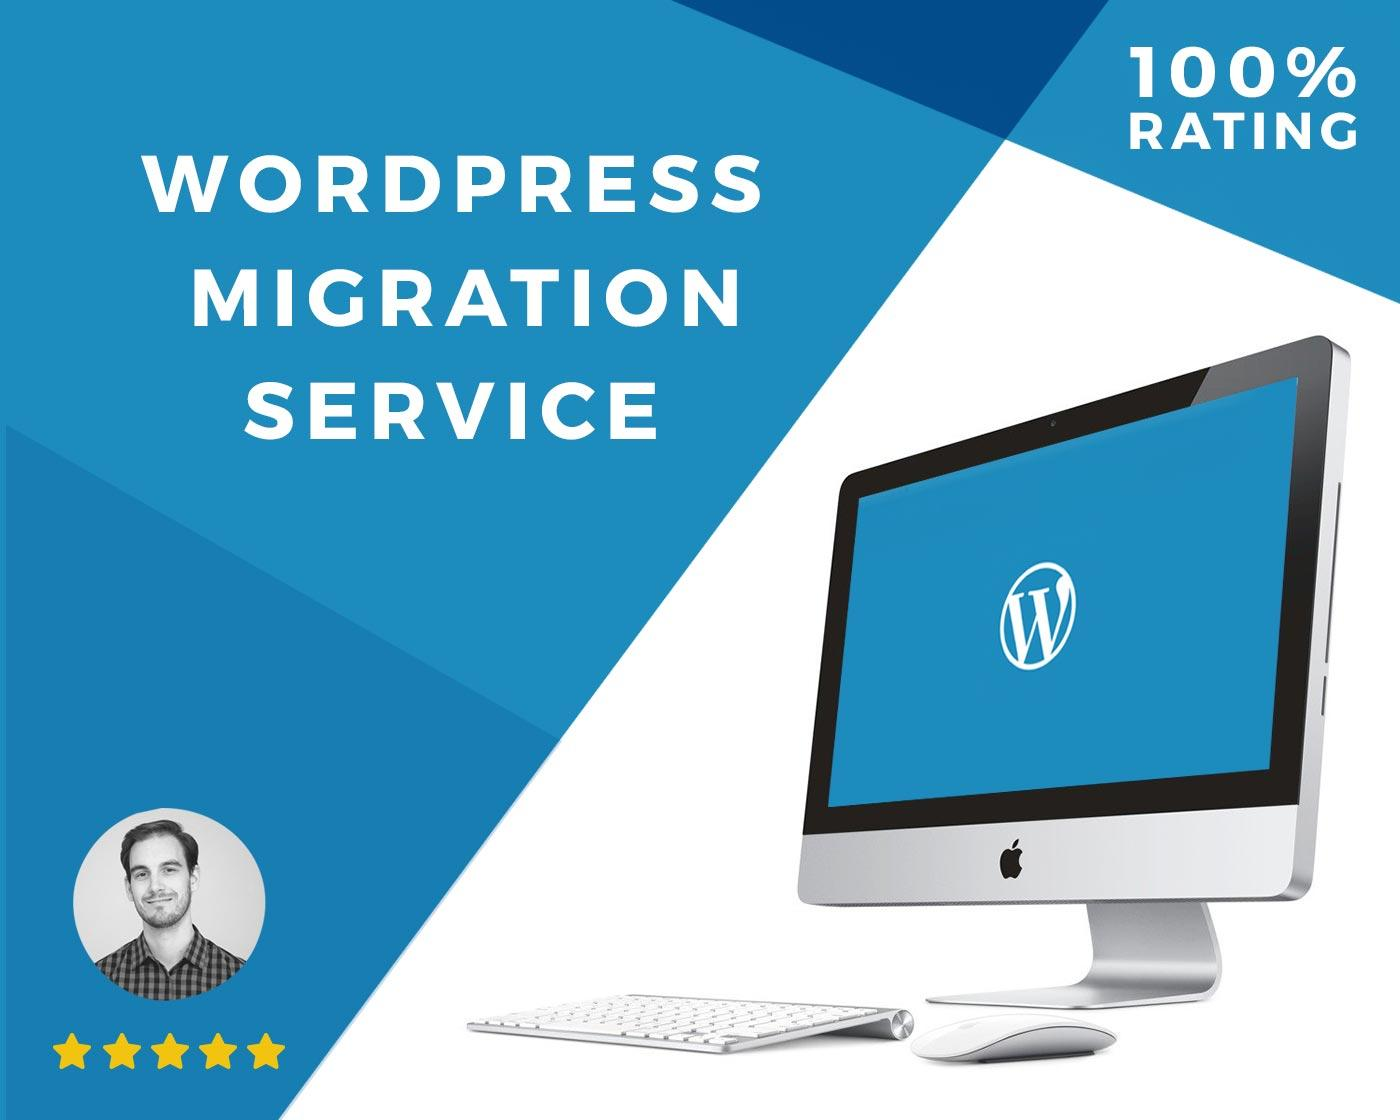 WordPress Website Migration / Transfer / Moving / Cloning Service by Ryan_Carter - 86110